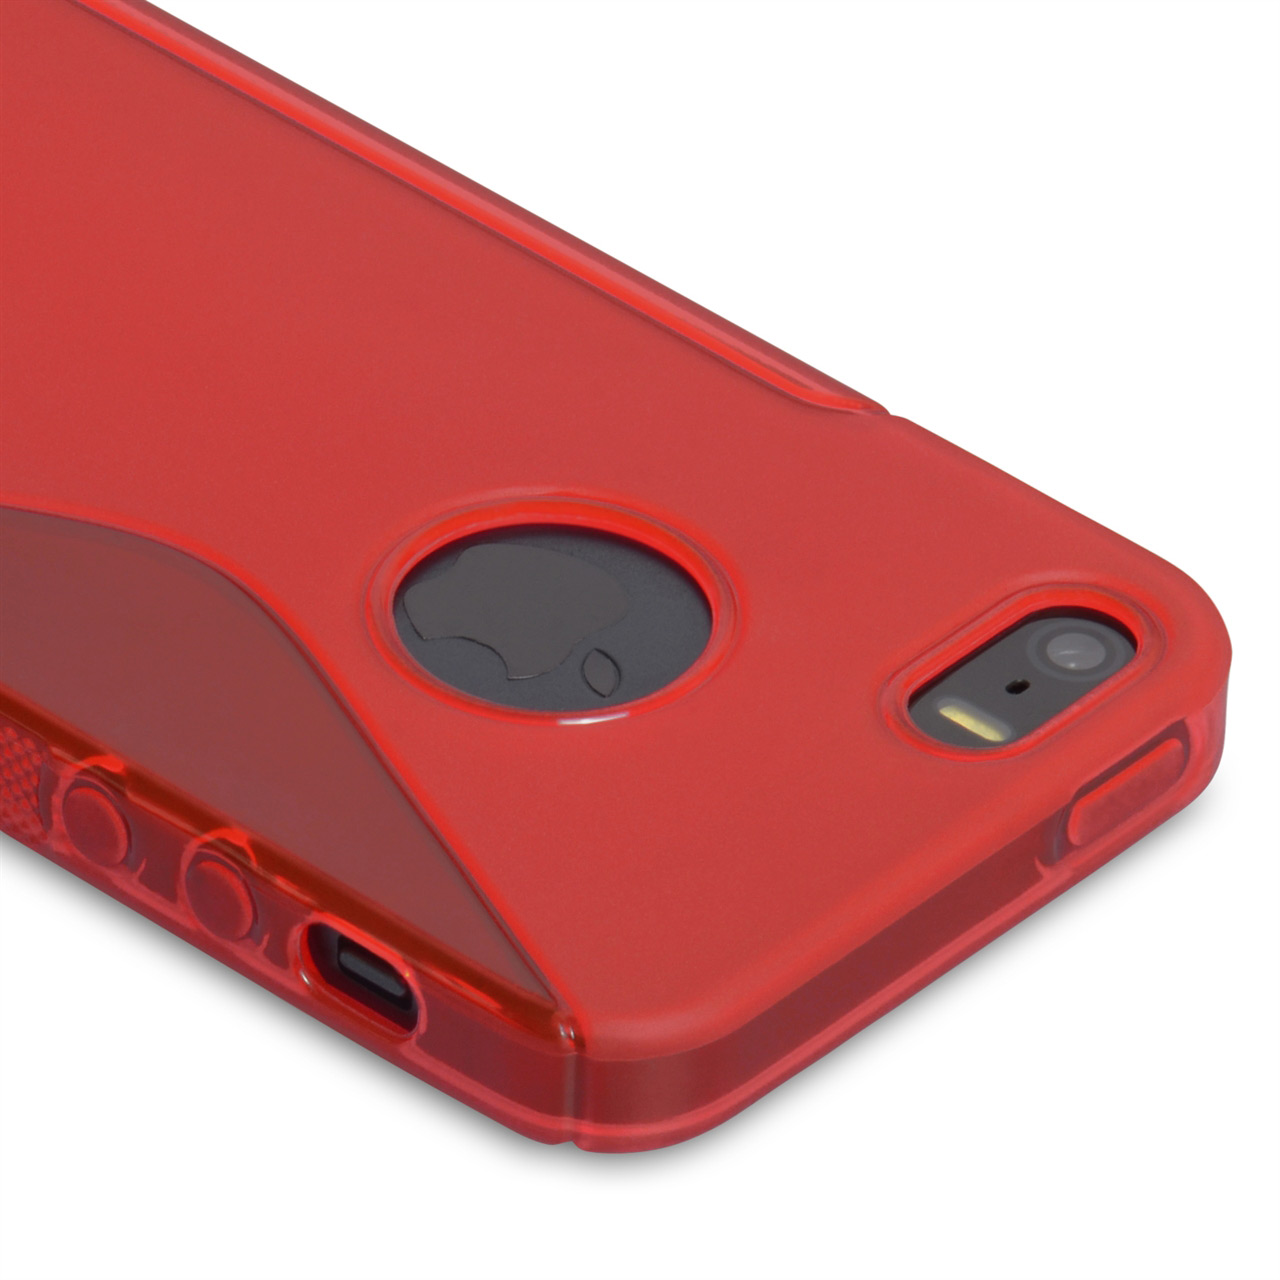 Caseflex iPhone 5 / 5S S-Line Gel Case - Red